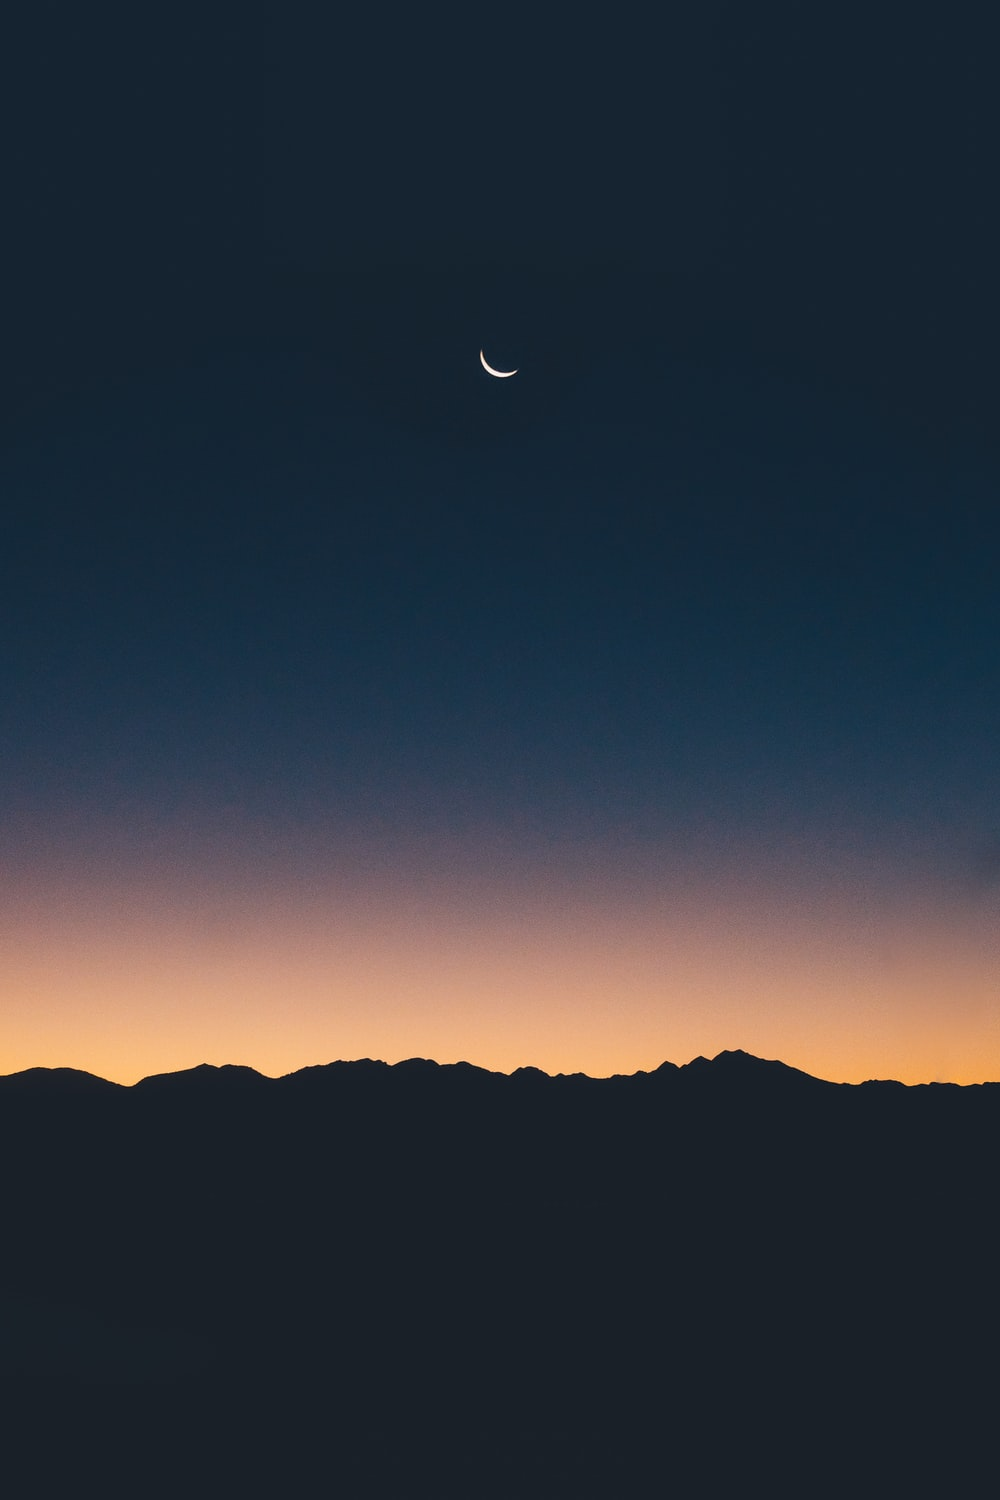 silhouette photography of land under a crescent moon during golden hour